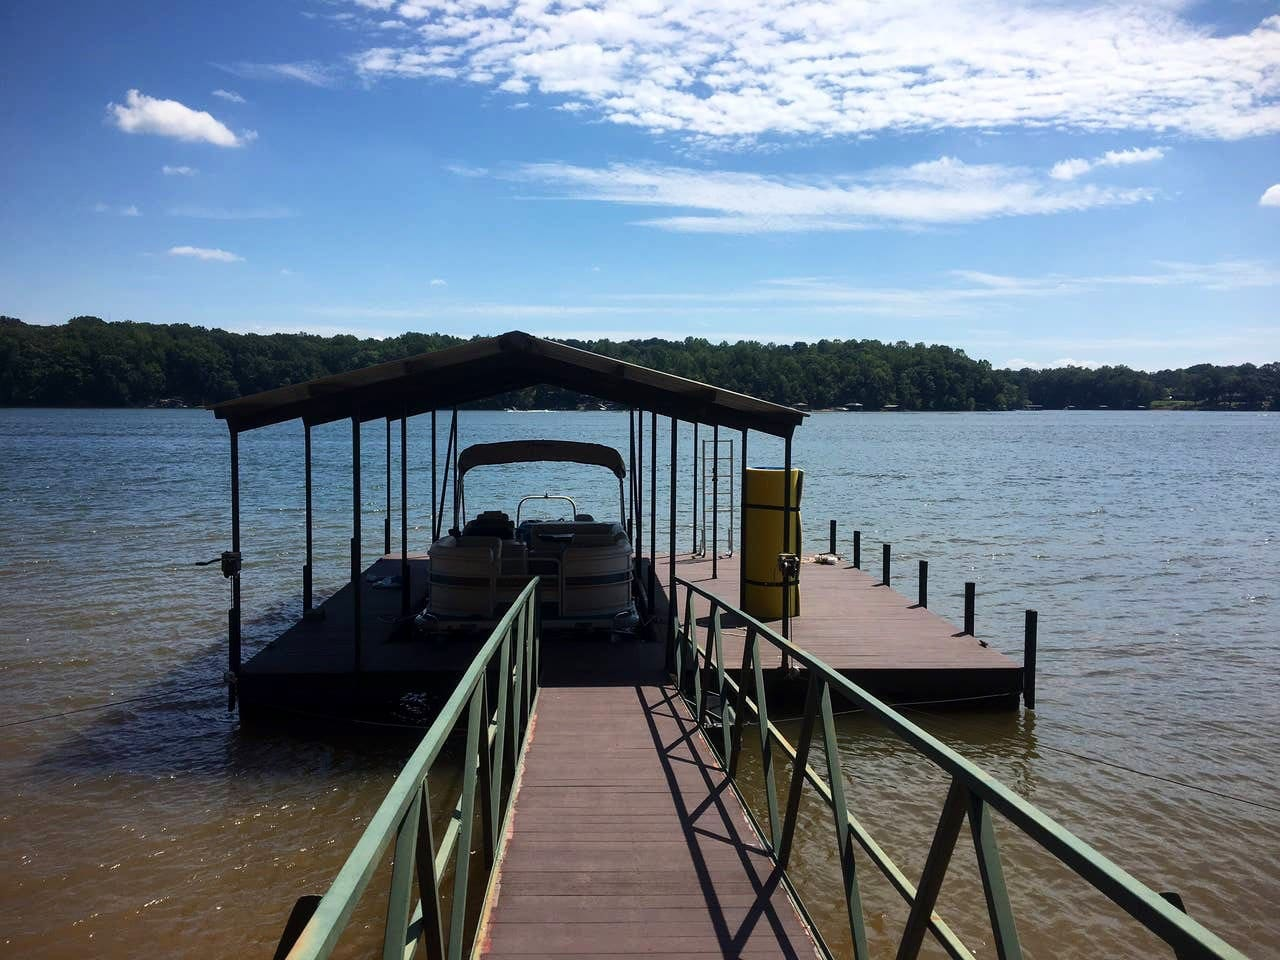 Enjoy the lake from your own private dock.  The boat is available to rent.  Take a boat ride directly to Clemson for the game.